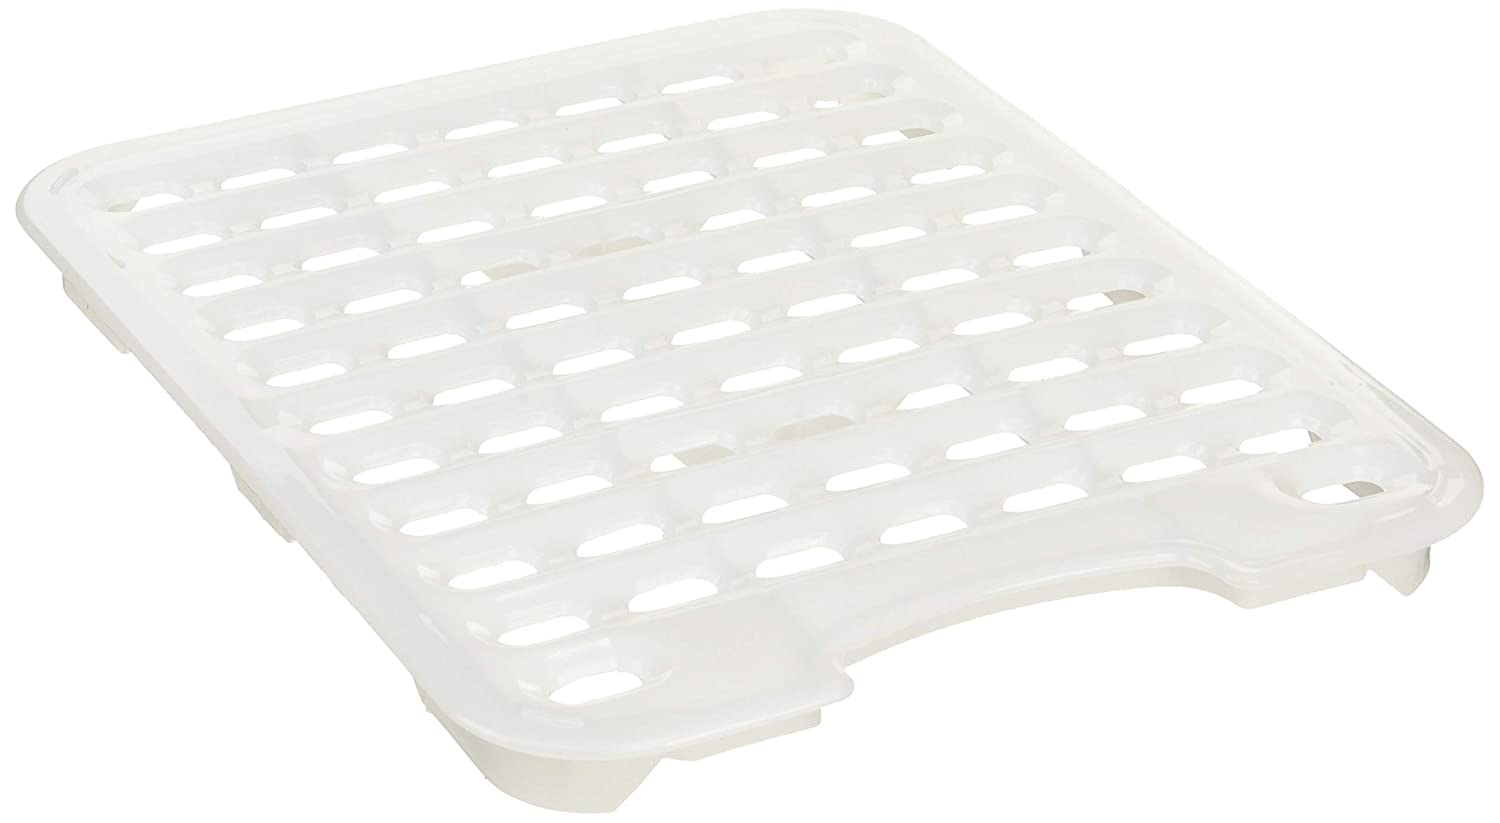 araven, 00241, Grill for Storage Containers, GN1/2, BPA Free